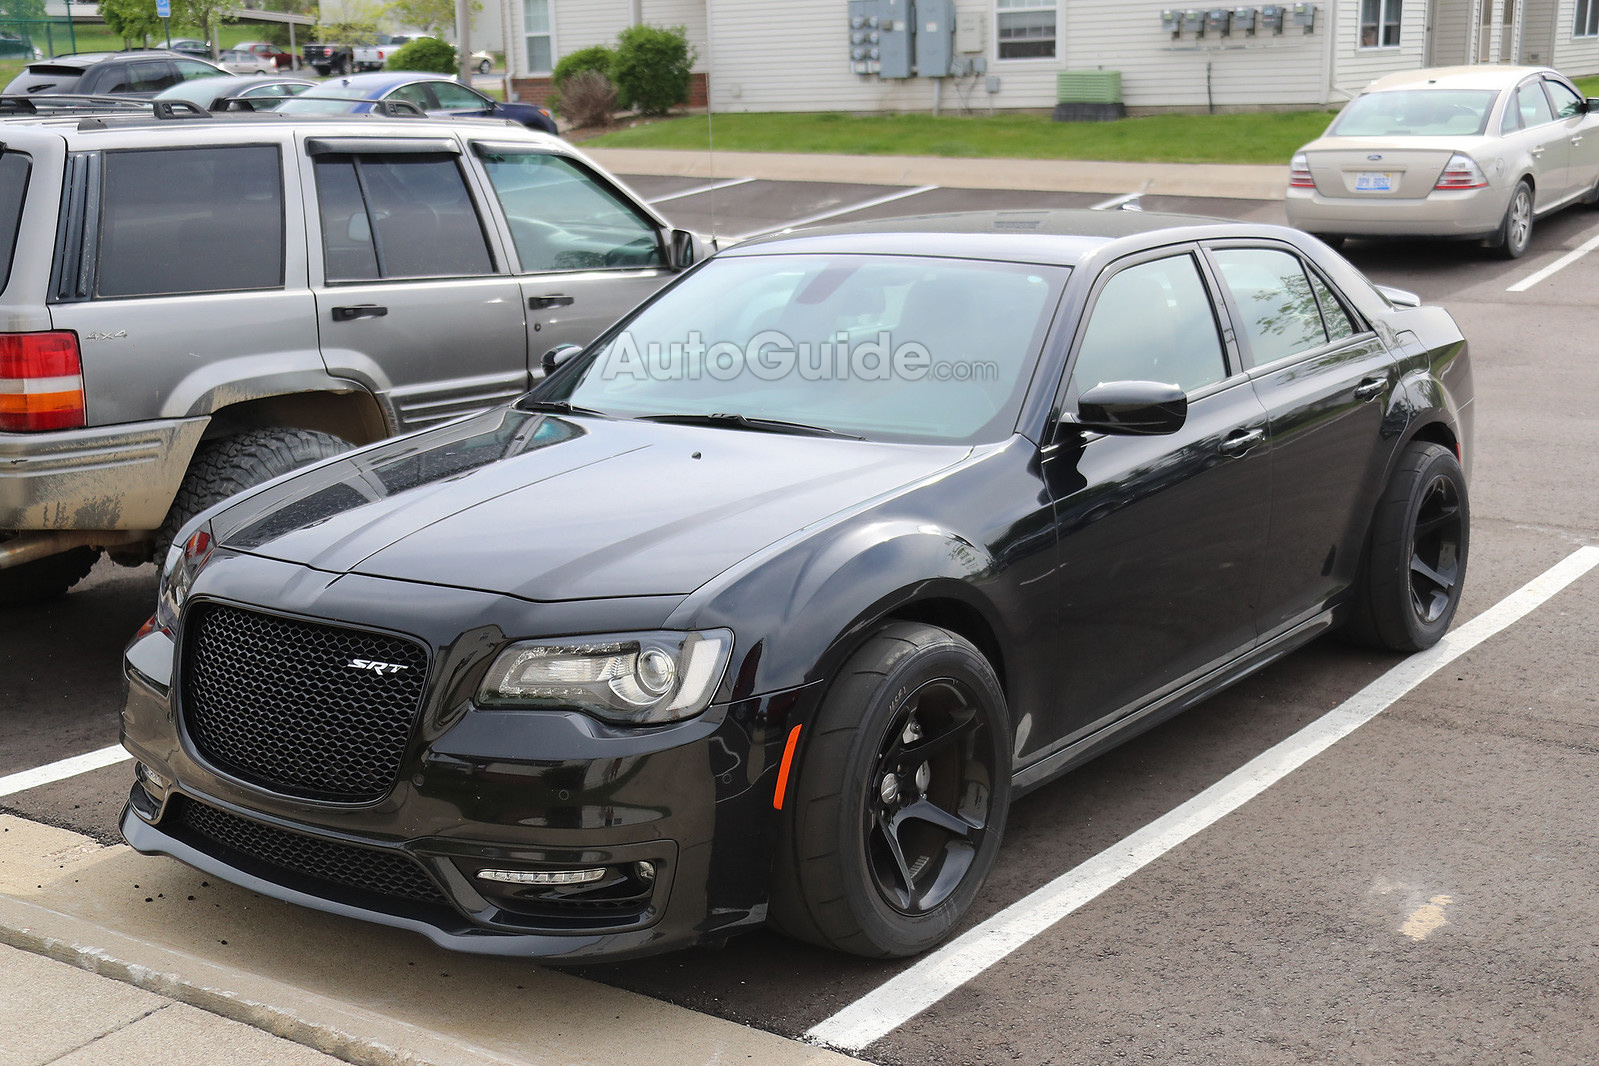 Chrysler 300srt >> Report: A Chrysler 300 Hellcat is Happening » AutoGuide.com News